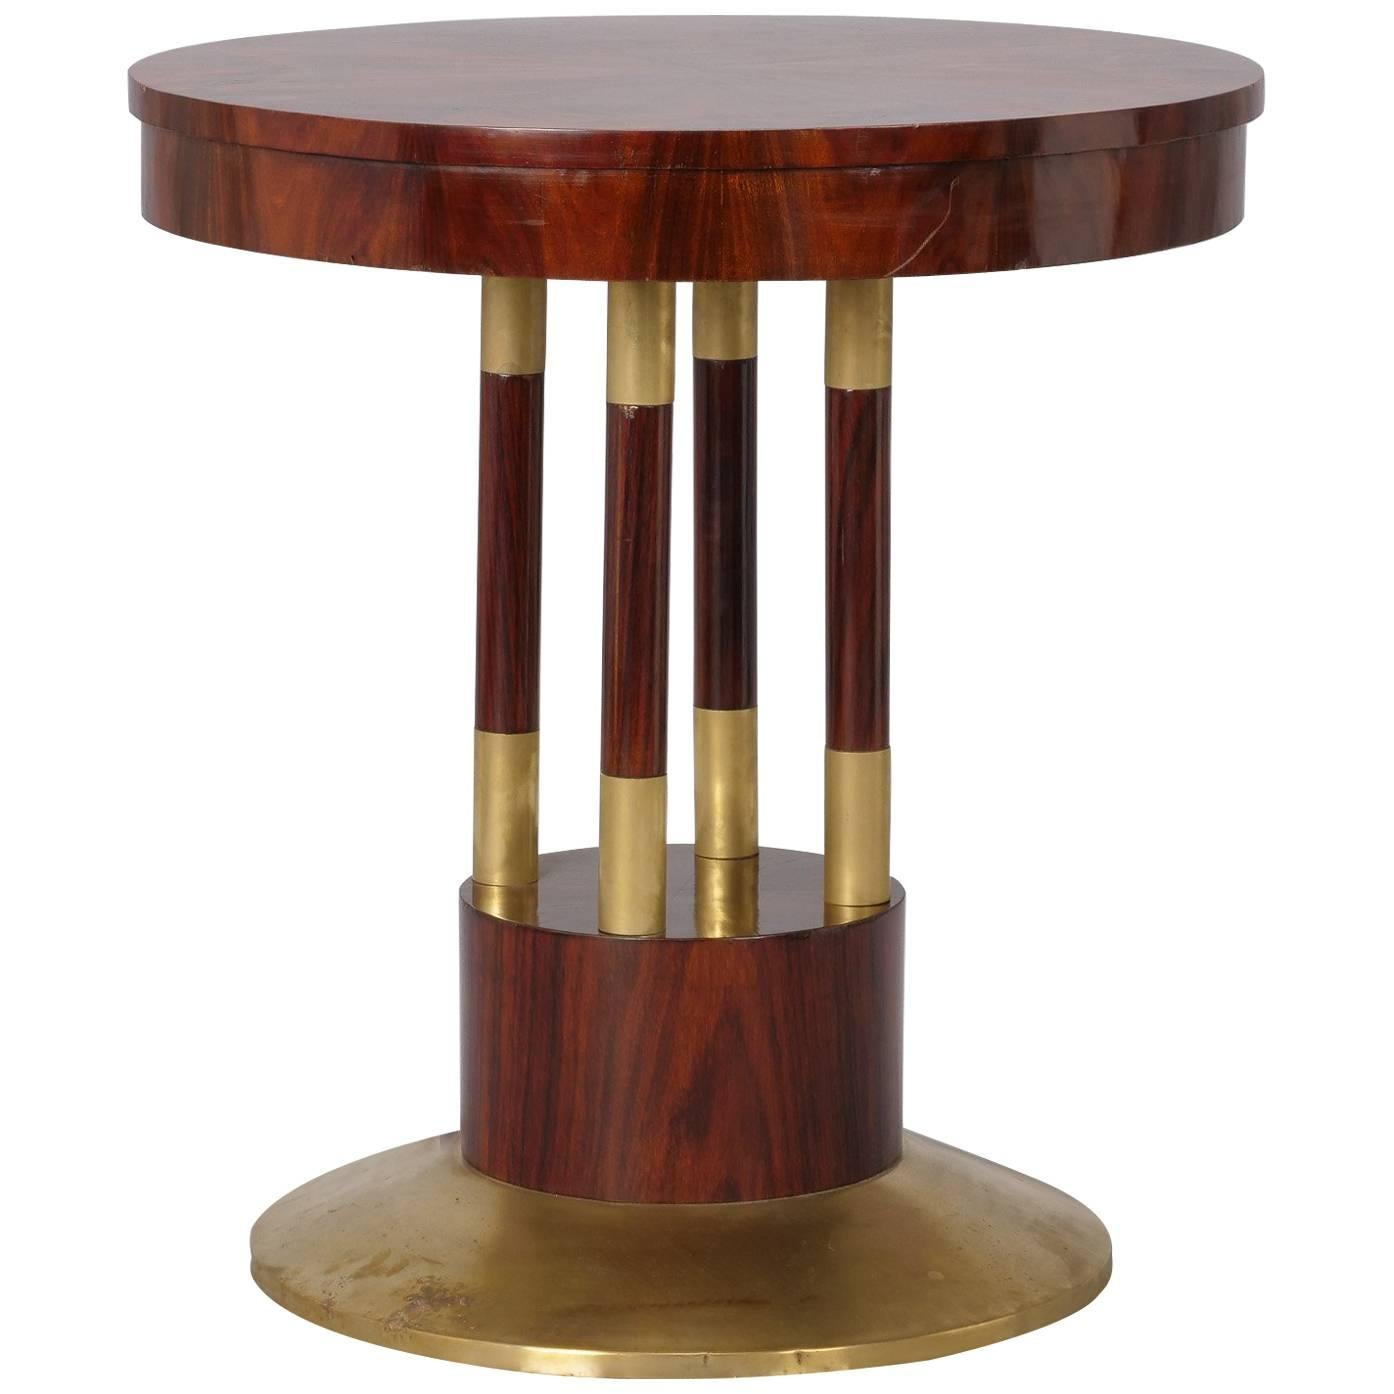 Attractive Round Jugendstil Rosewood And Brass Pedestal Table 1